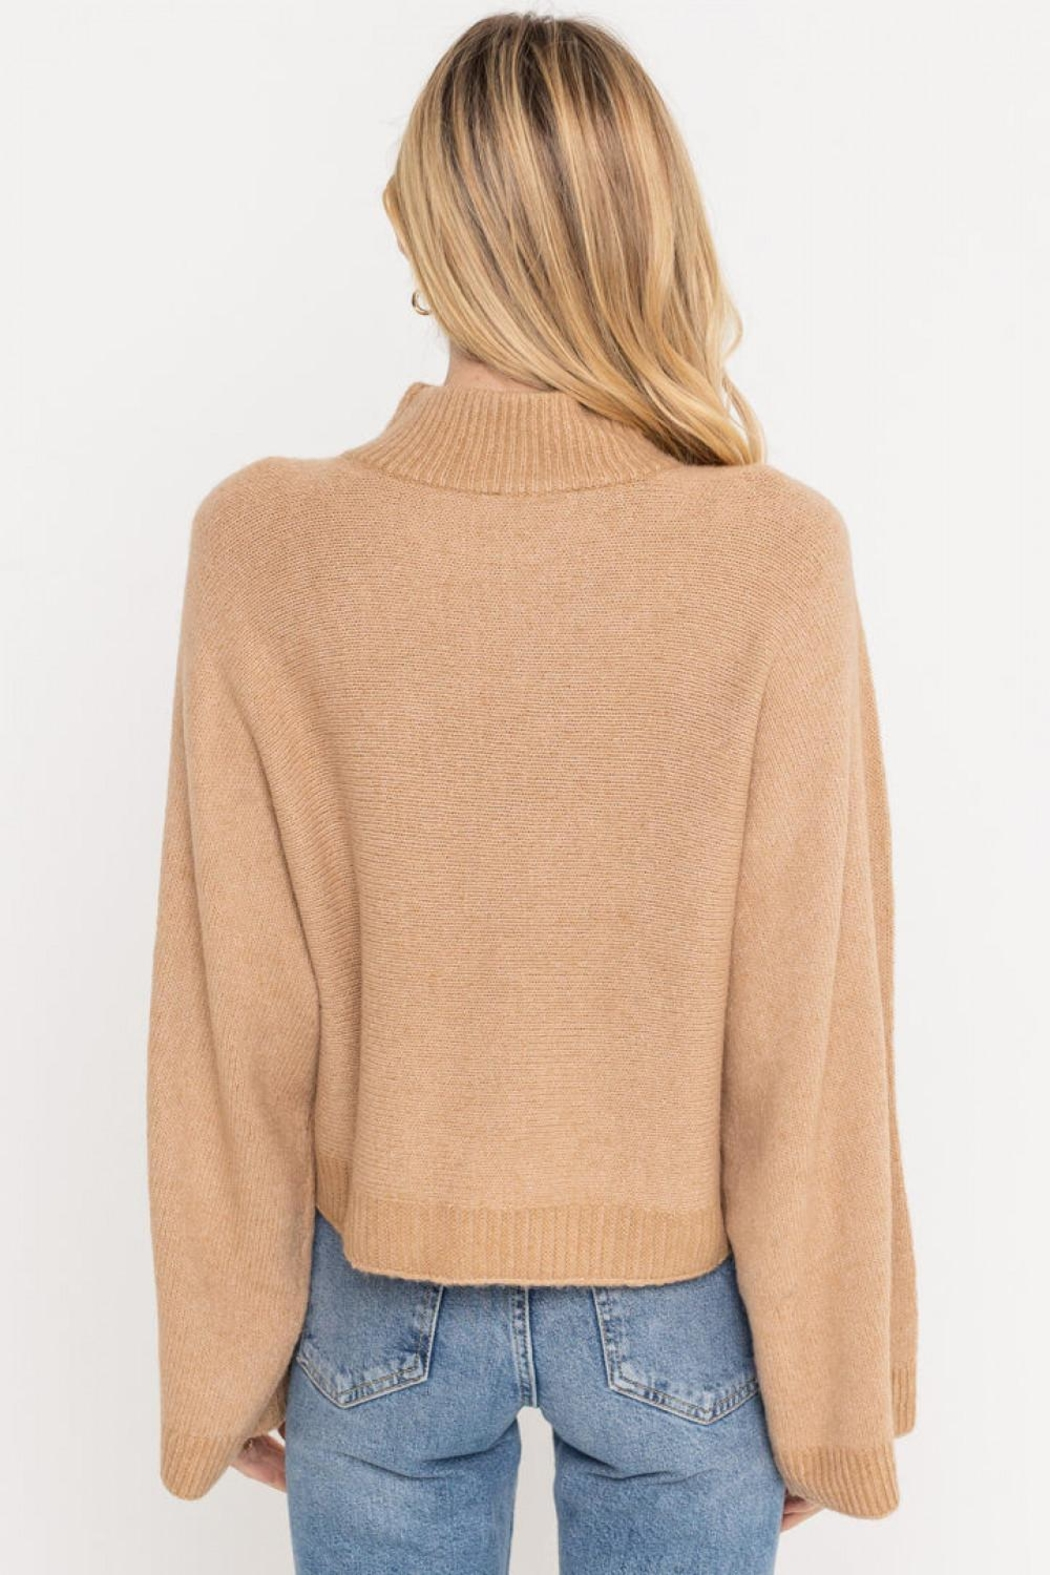 Lush Clothing  Wide Sleeve Sweater - Side Cropped Image